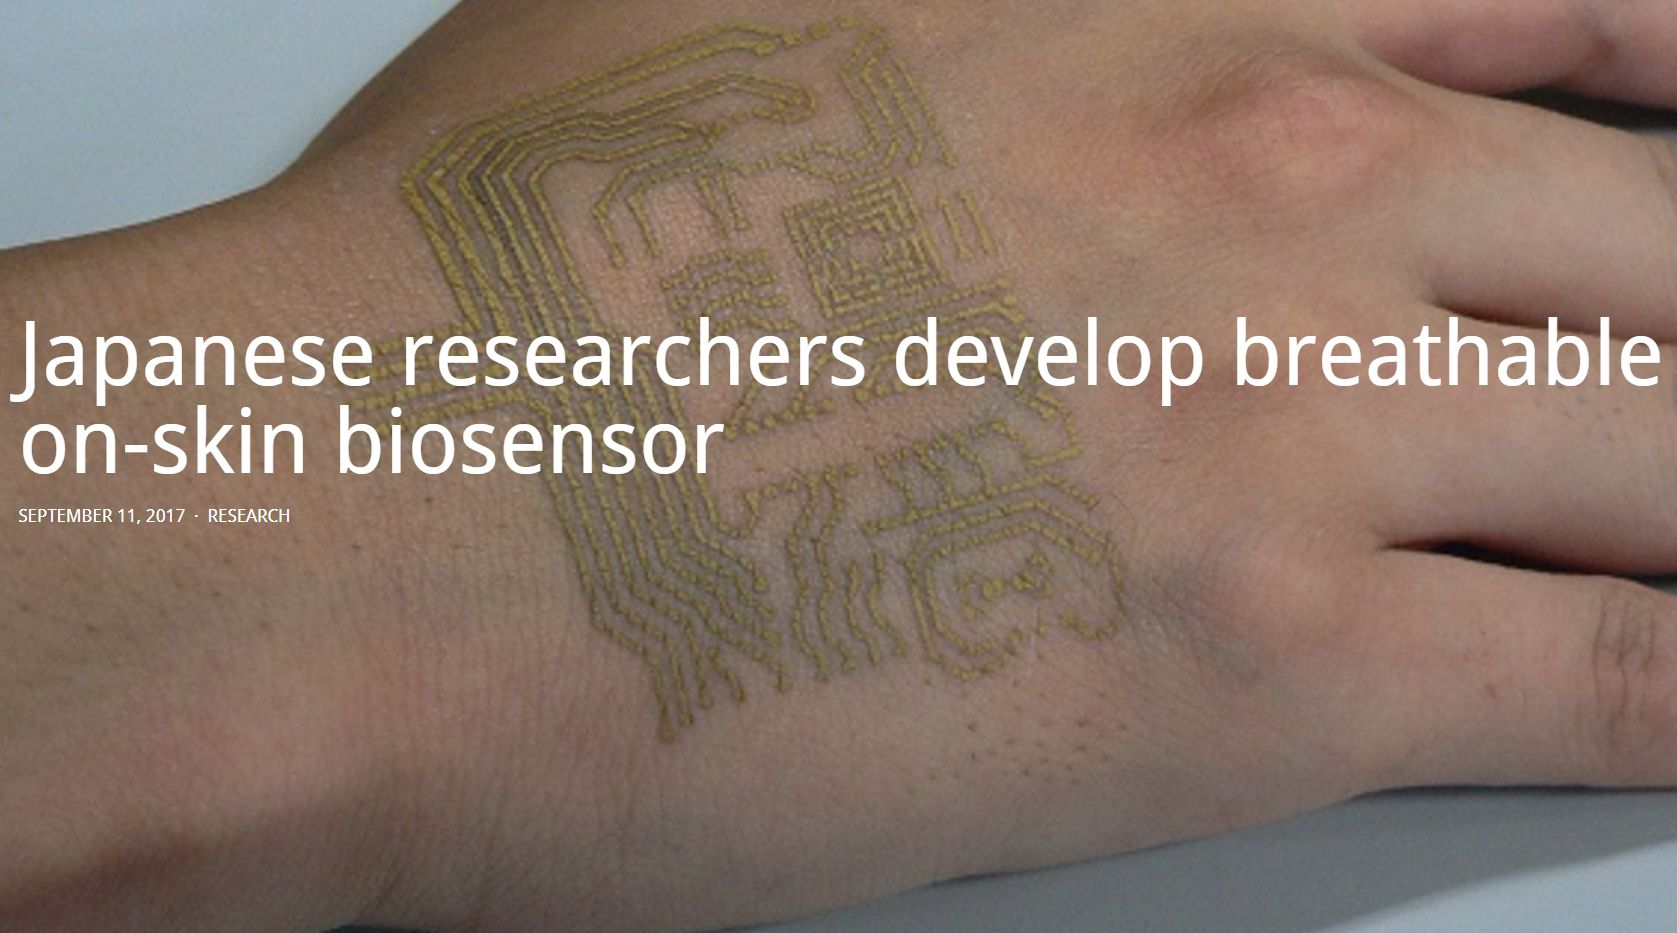 Japanese researchers develop breathable on-skin biosensor